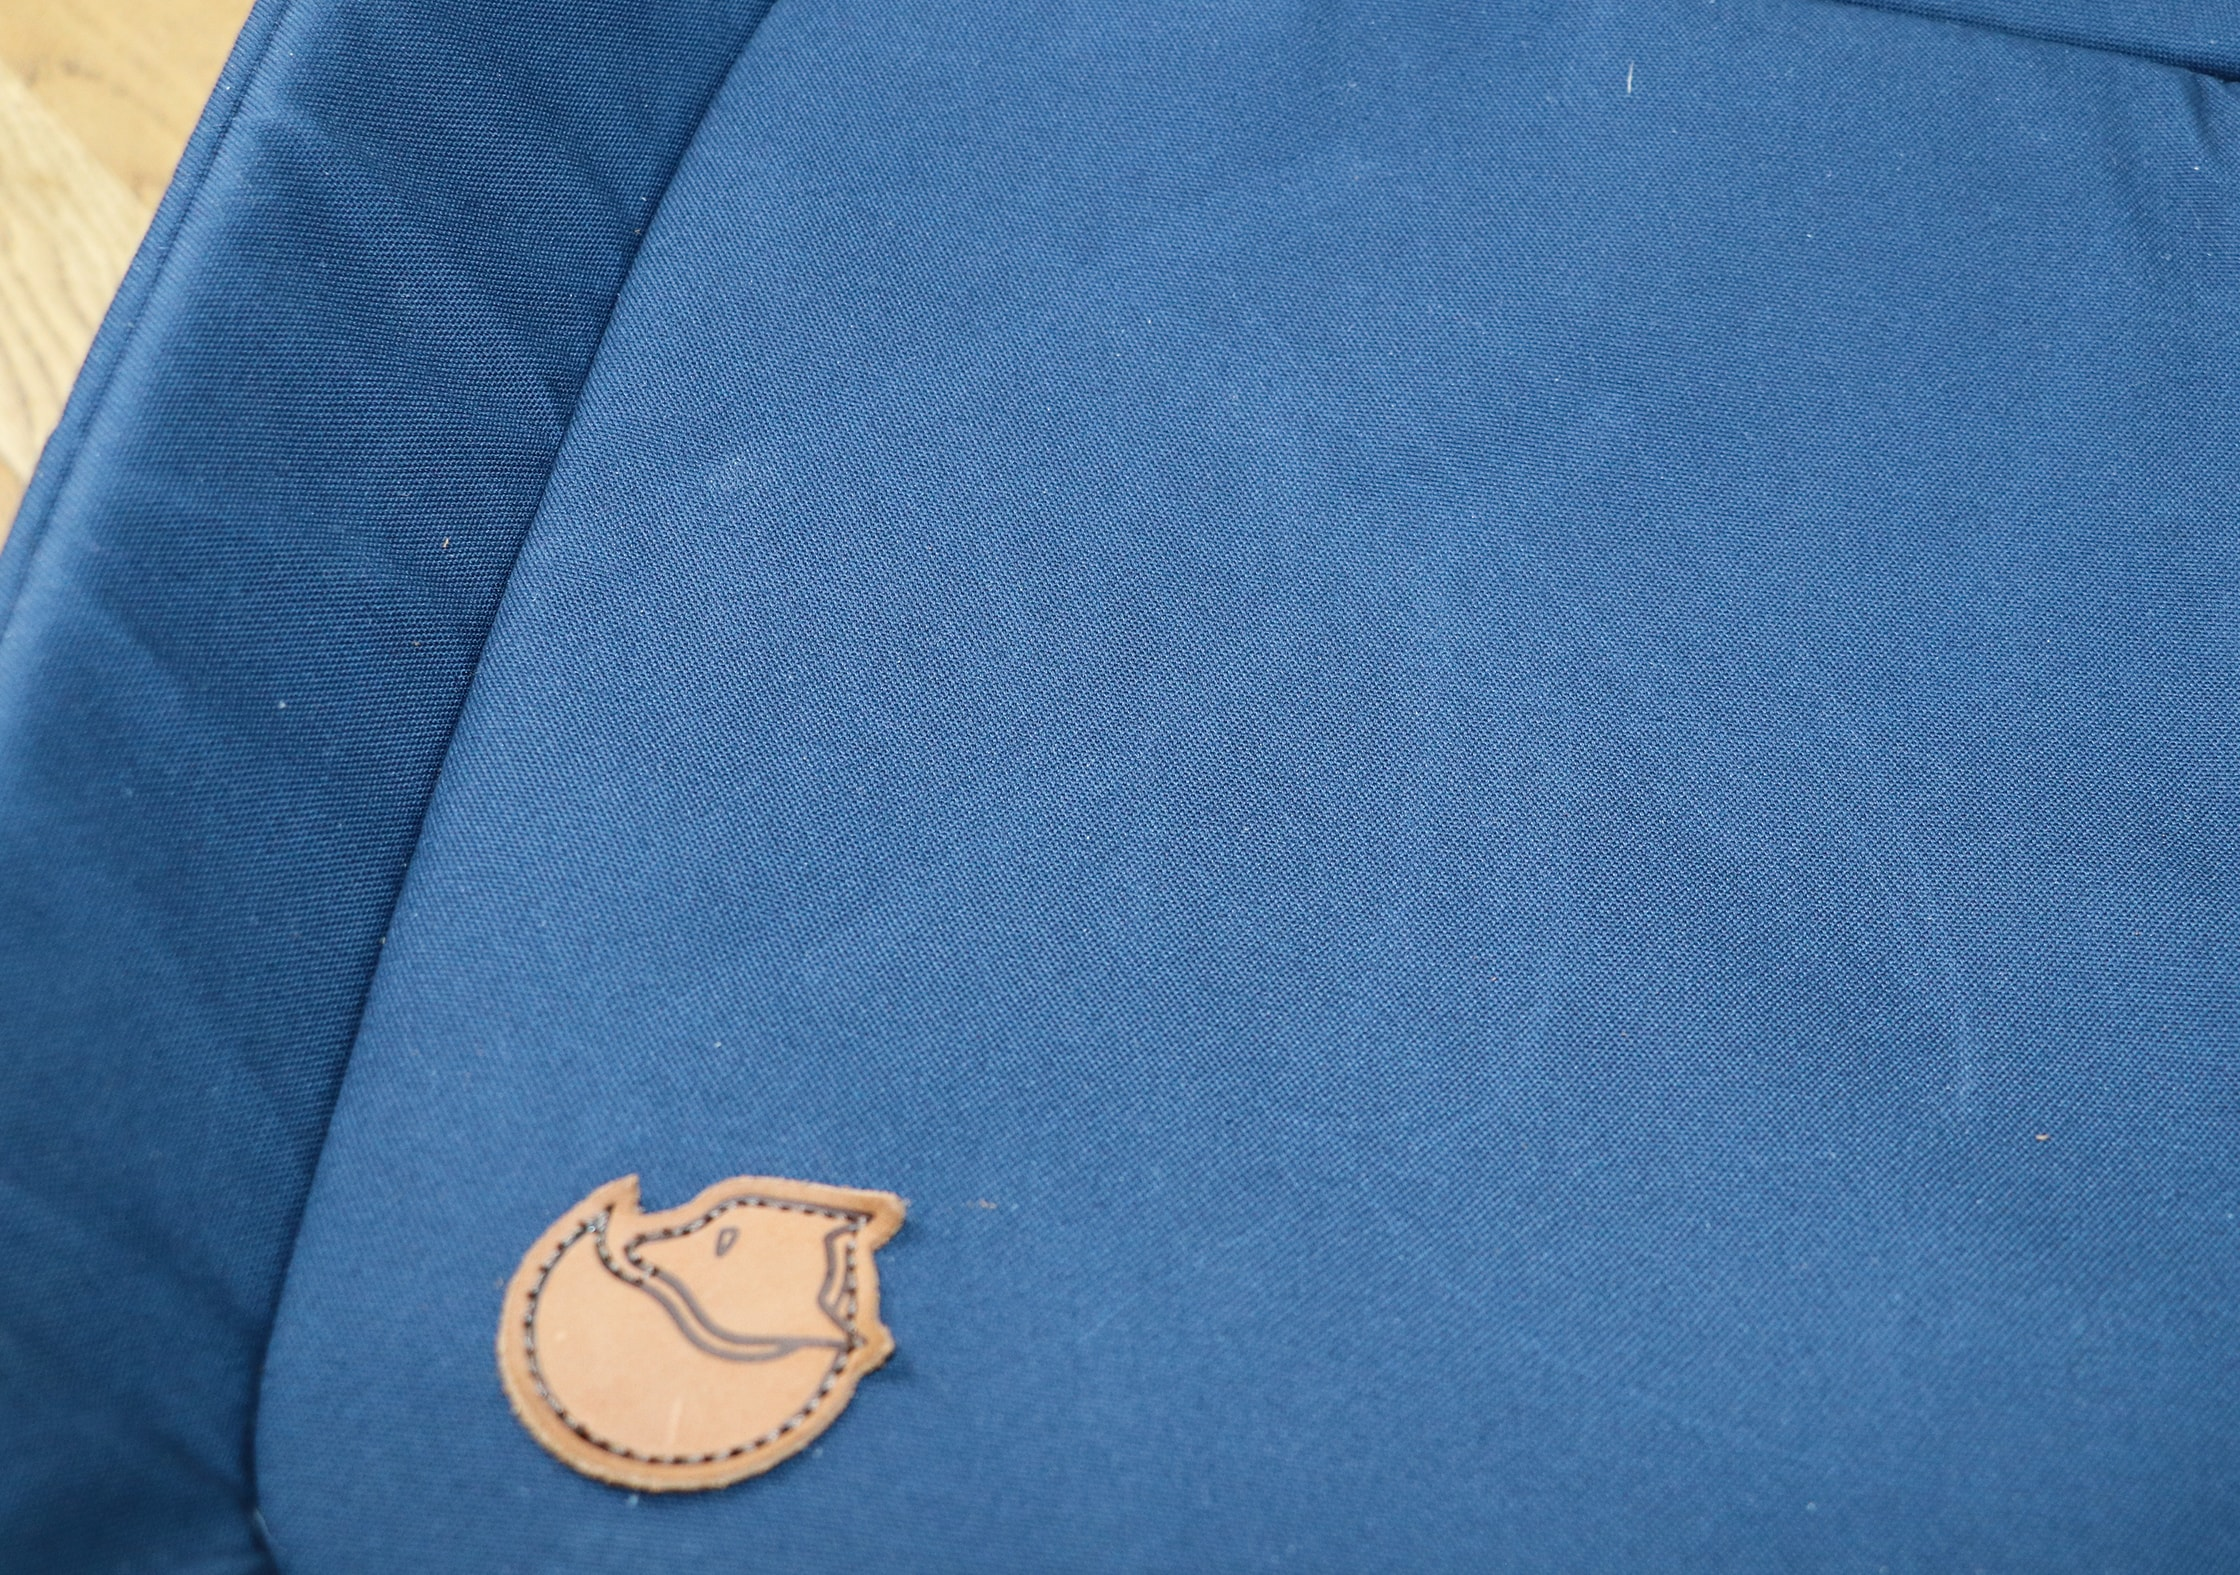 Marks On The Fabric Of The Fjallraven Travel Pack